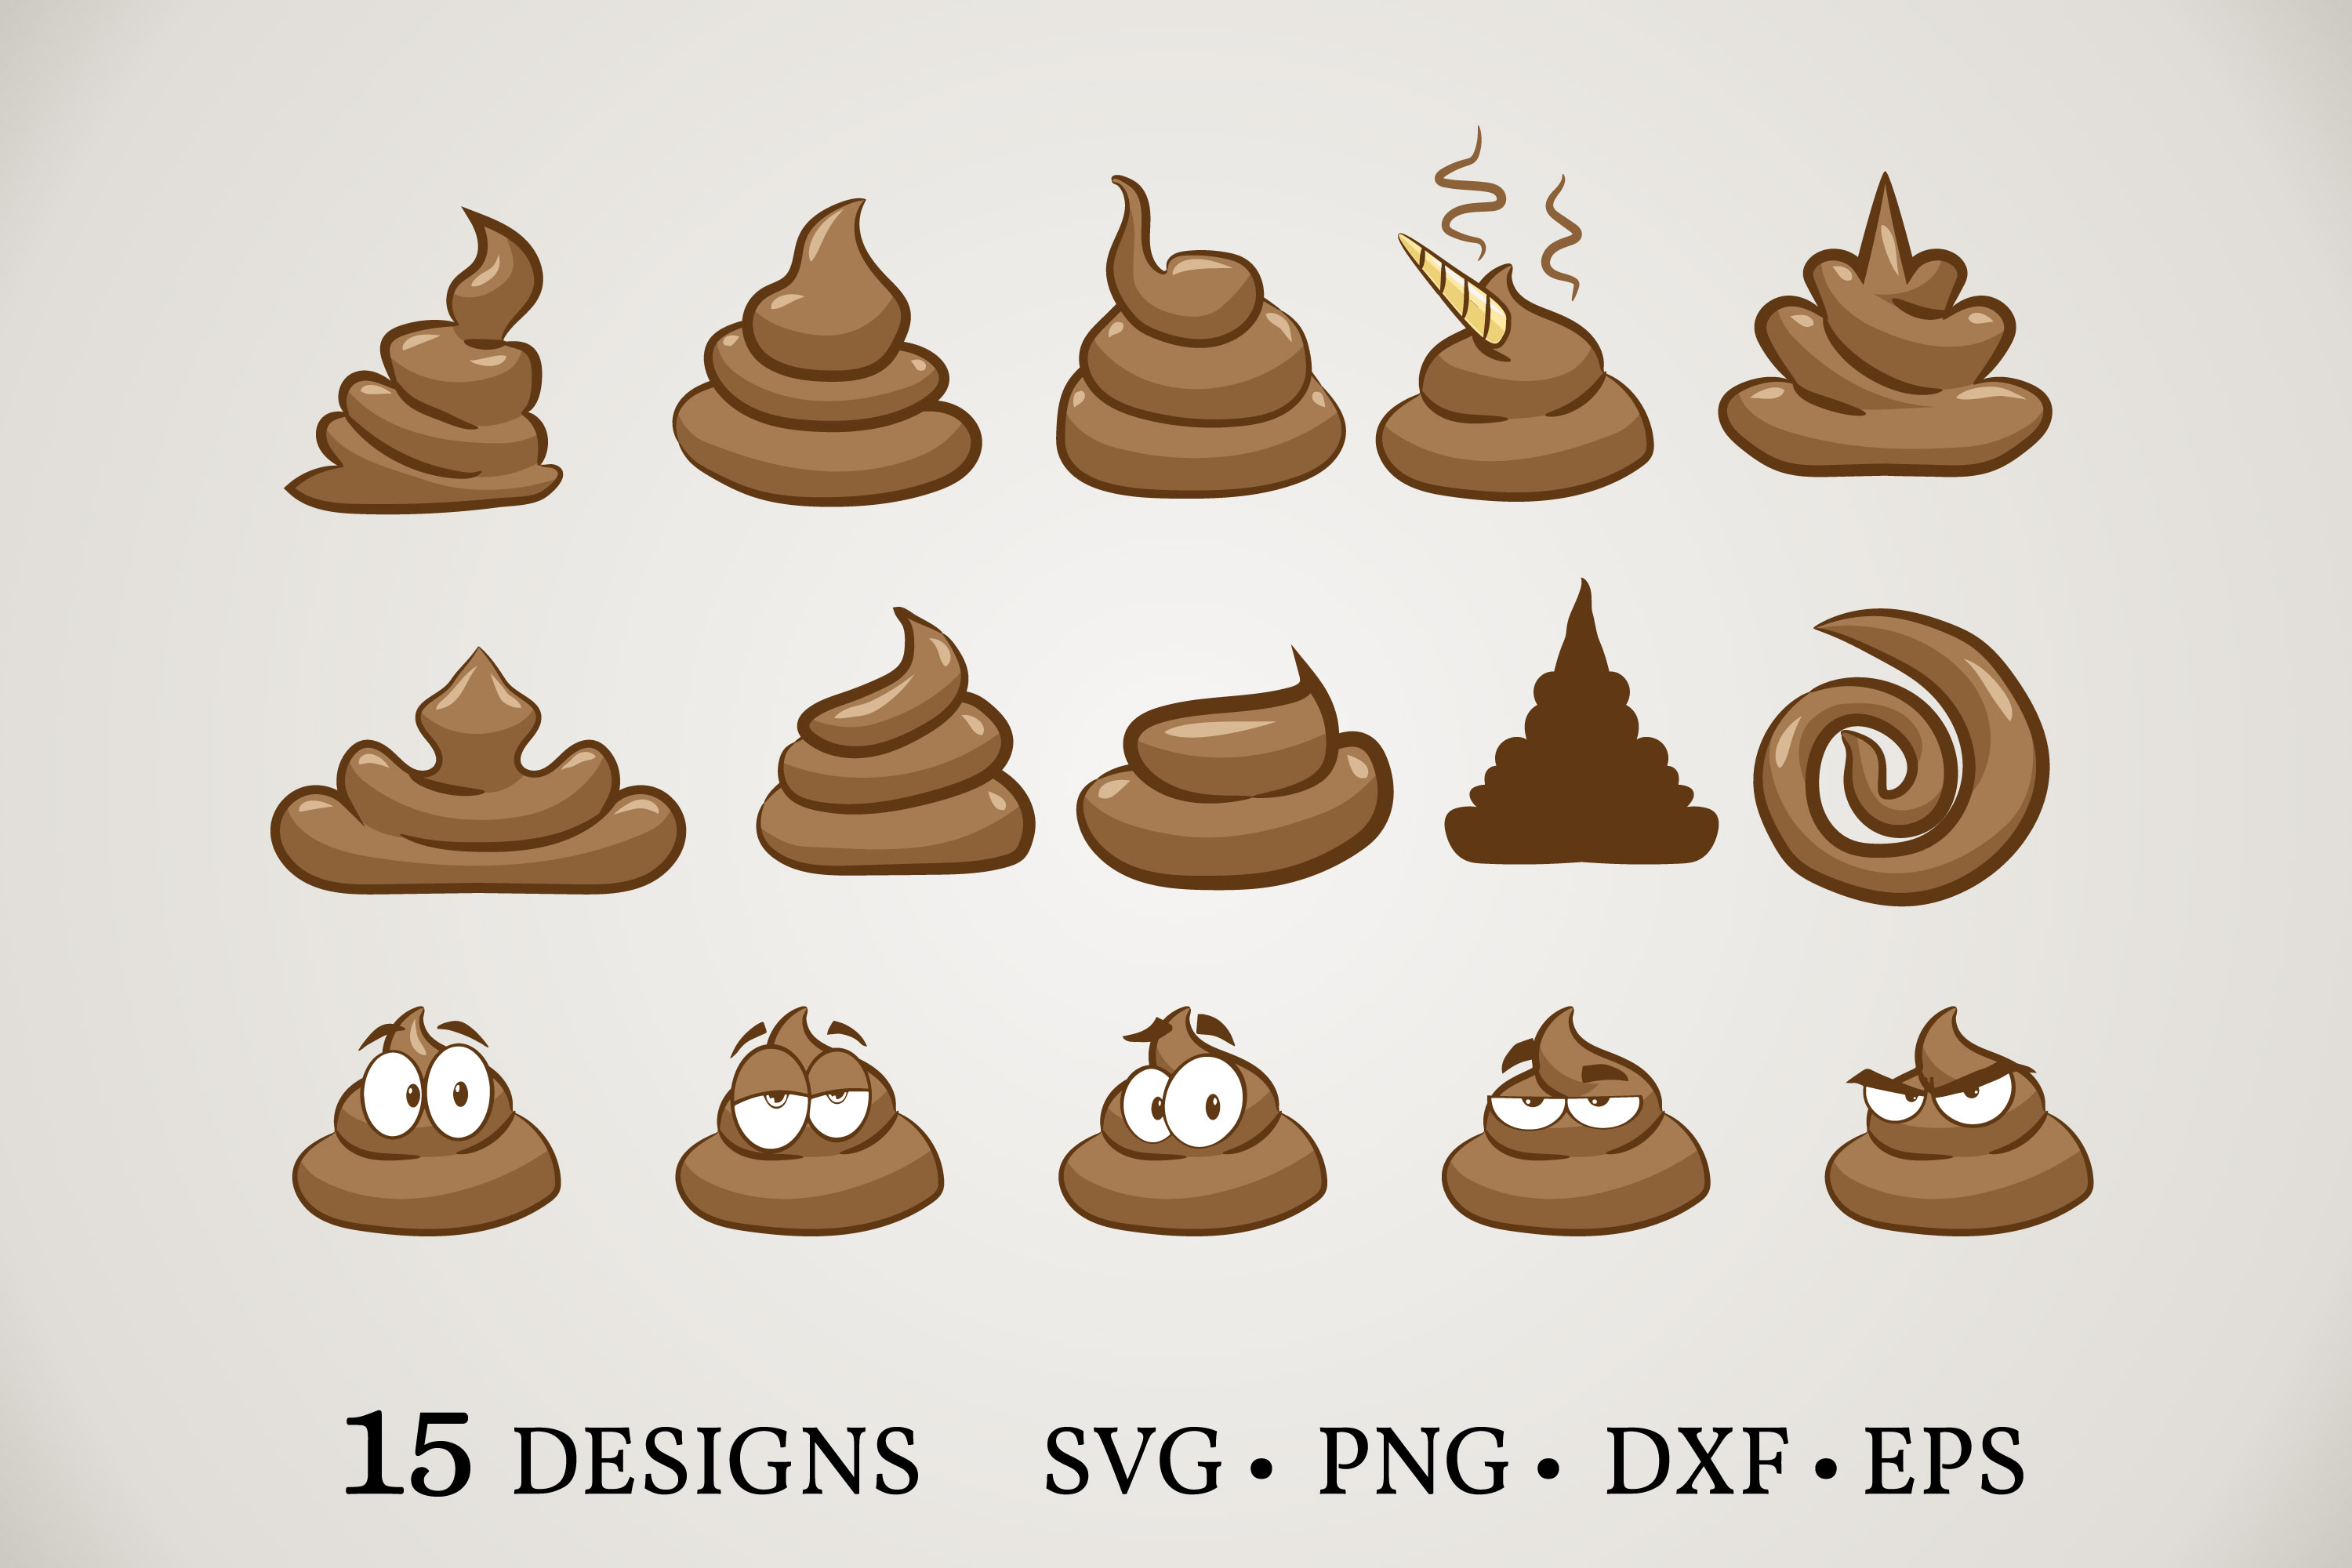 Download Free Poop Emoji Bundle Graphic By Euphoria Design Creative Fabrica for Cricut Explore, Silhouette and other cutting machines.